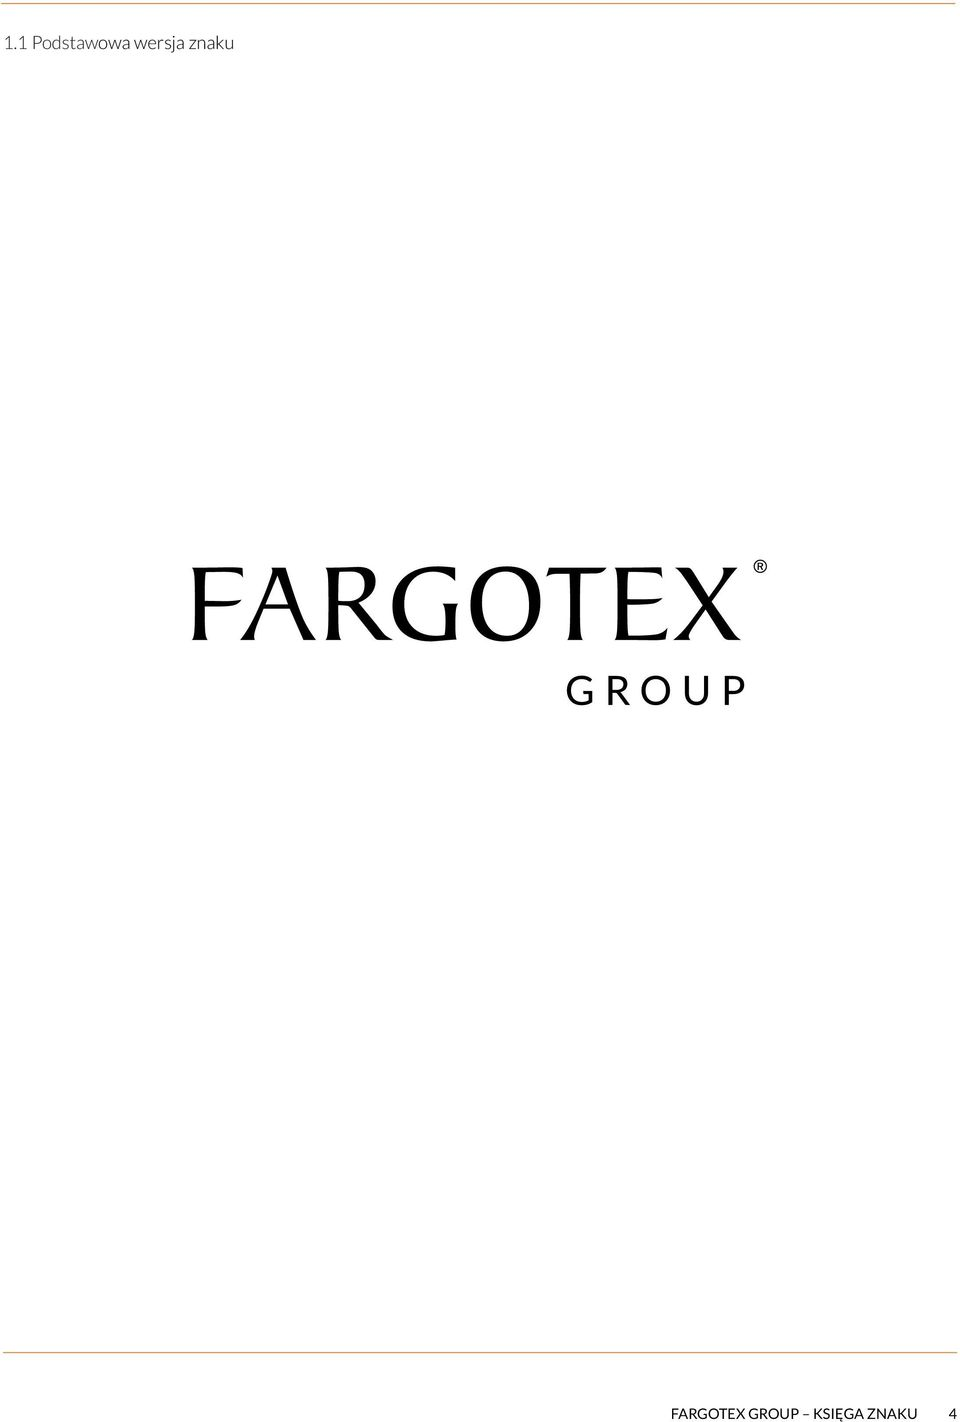 FARGOTEX GROUP